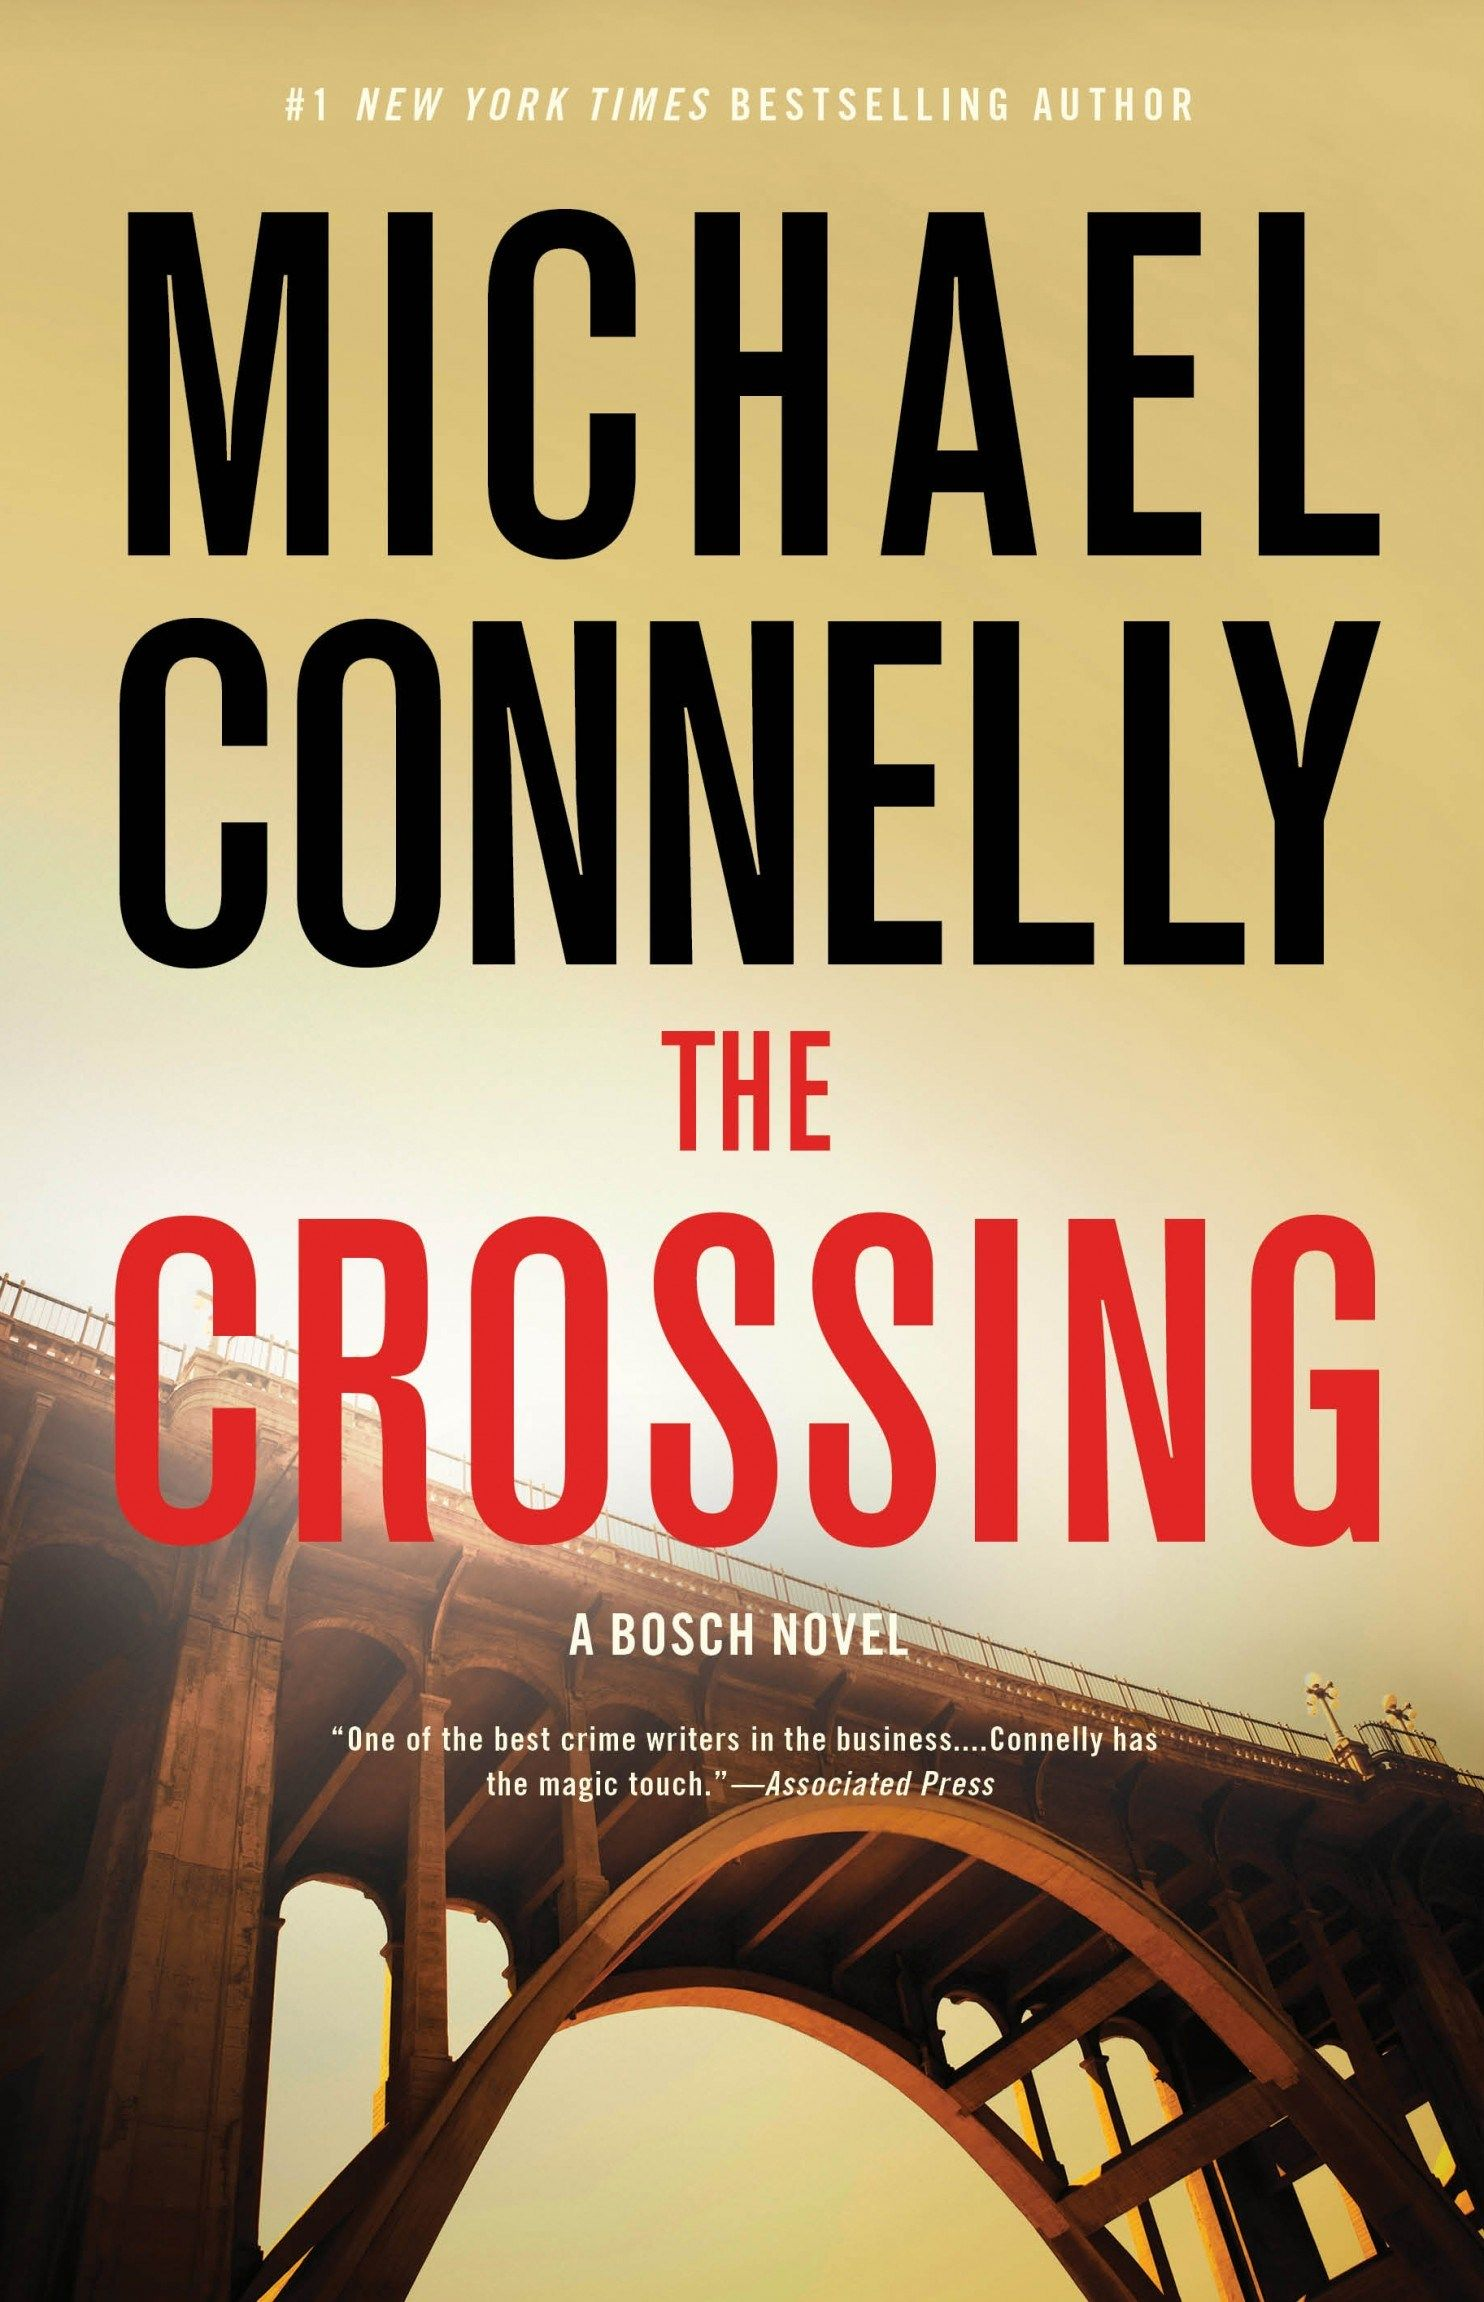 Michael connelly the crossing awordfromjojo mystery